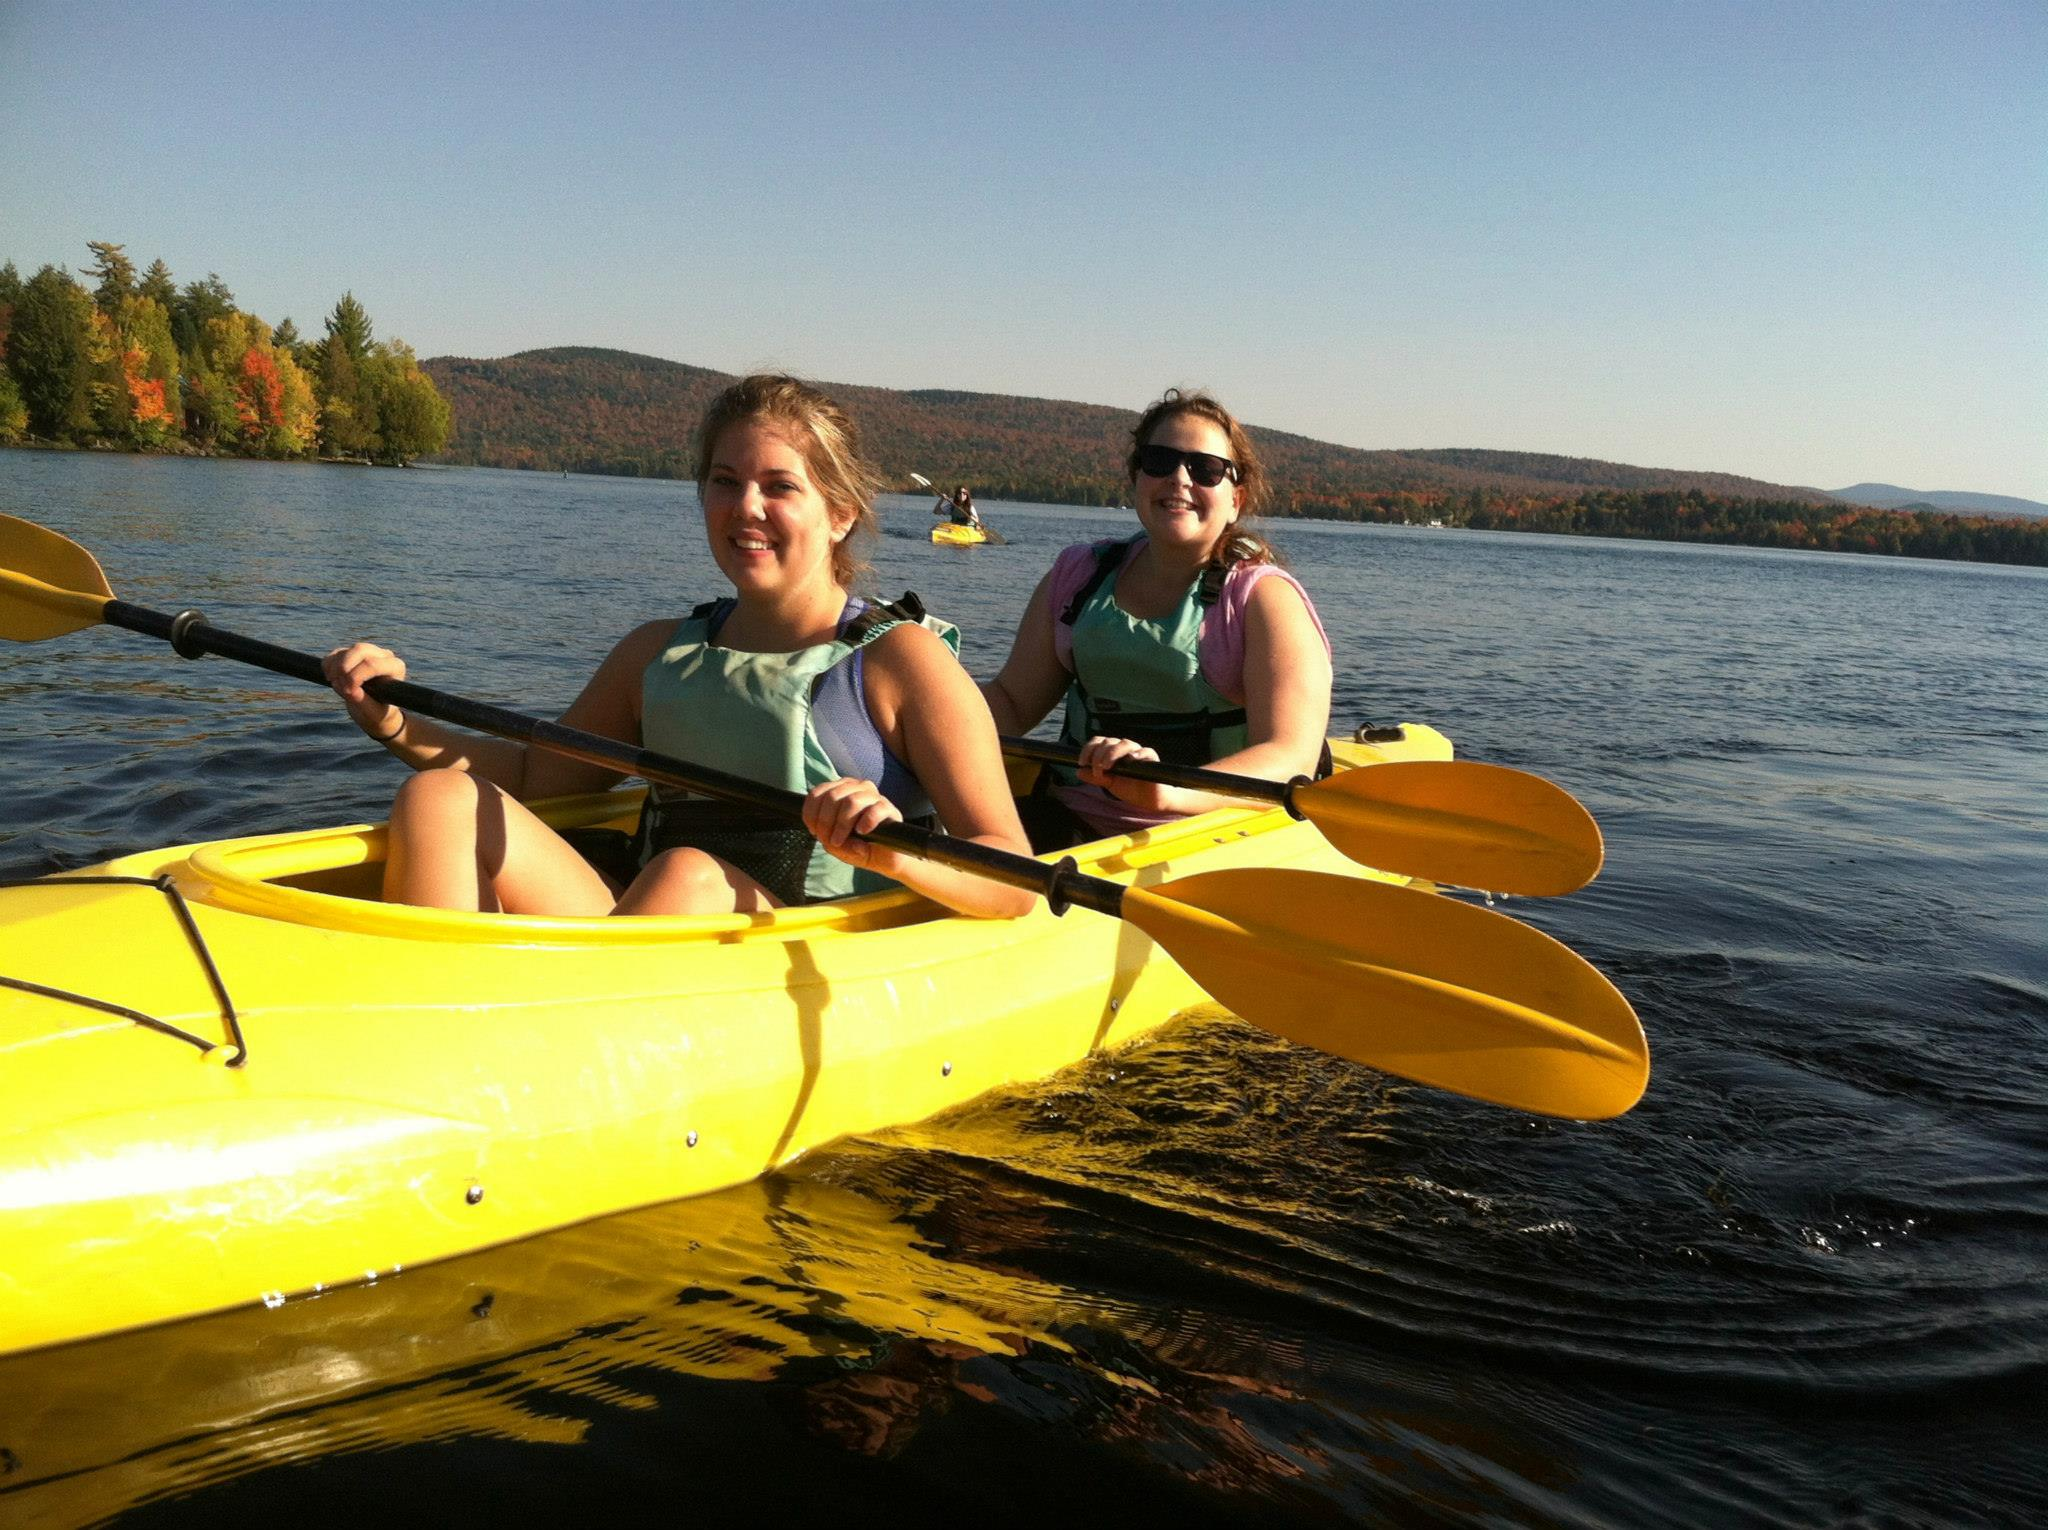 (My friend, Elaine, and I loved kayaking with everyone else.)